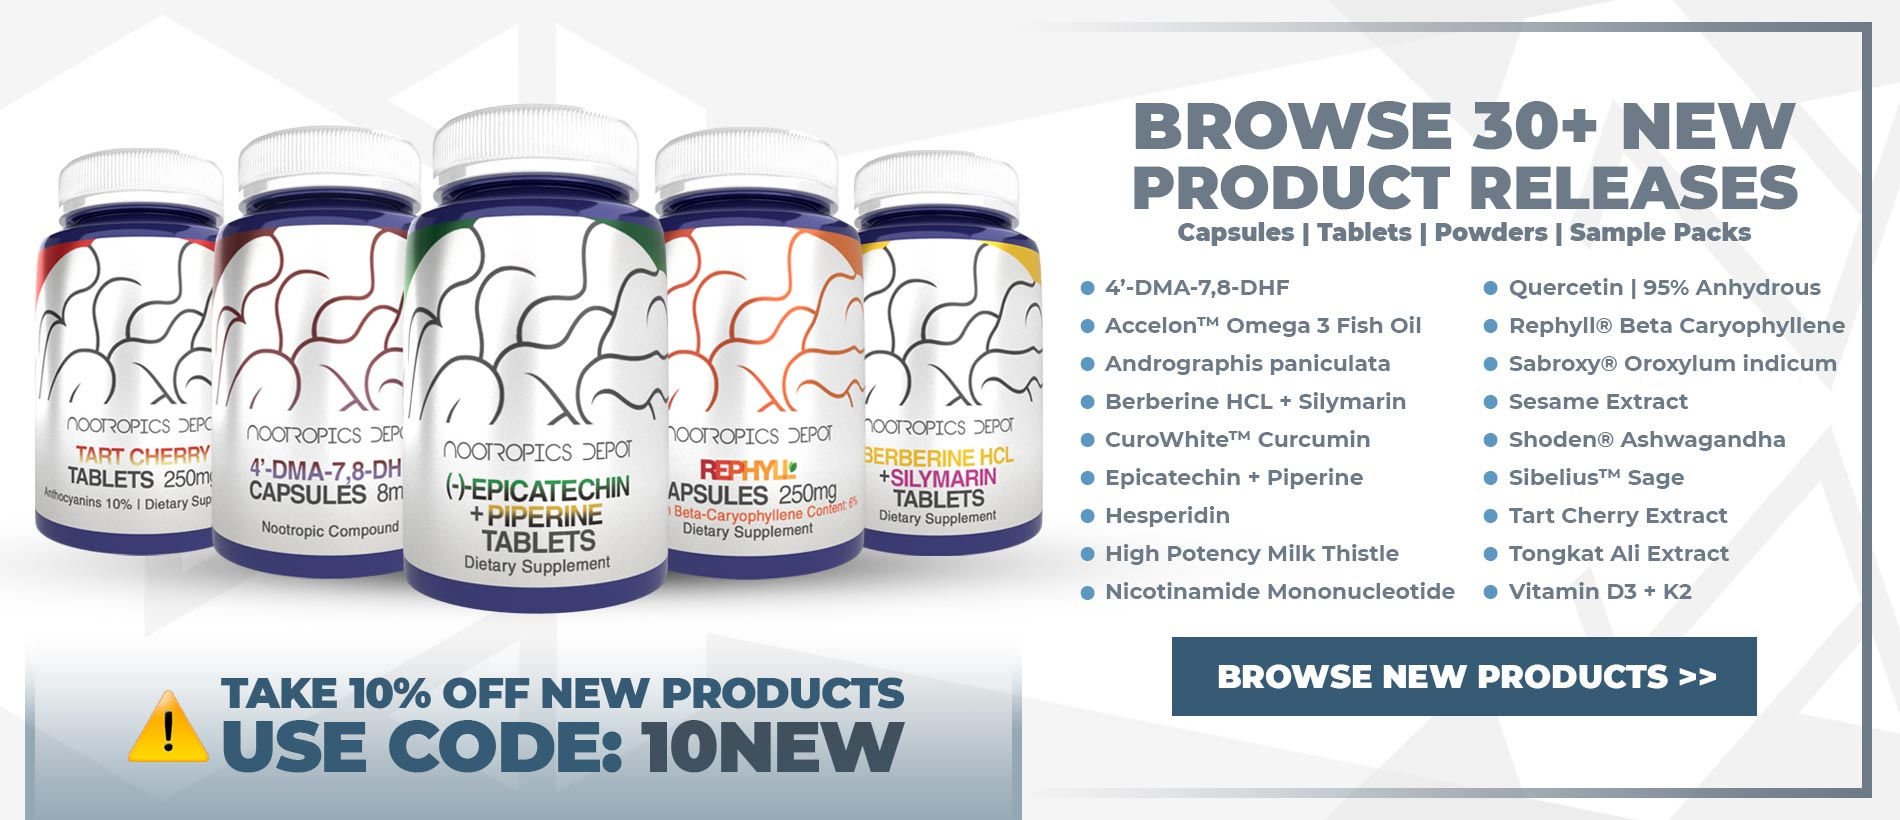 Browse 30+ New Products From Nootropics Depot - Take 10% Off All New Products With Coupon Code 10NEW.